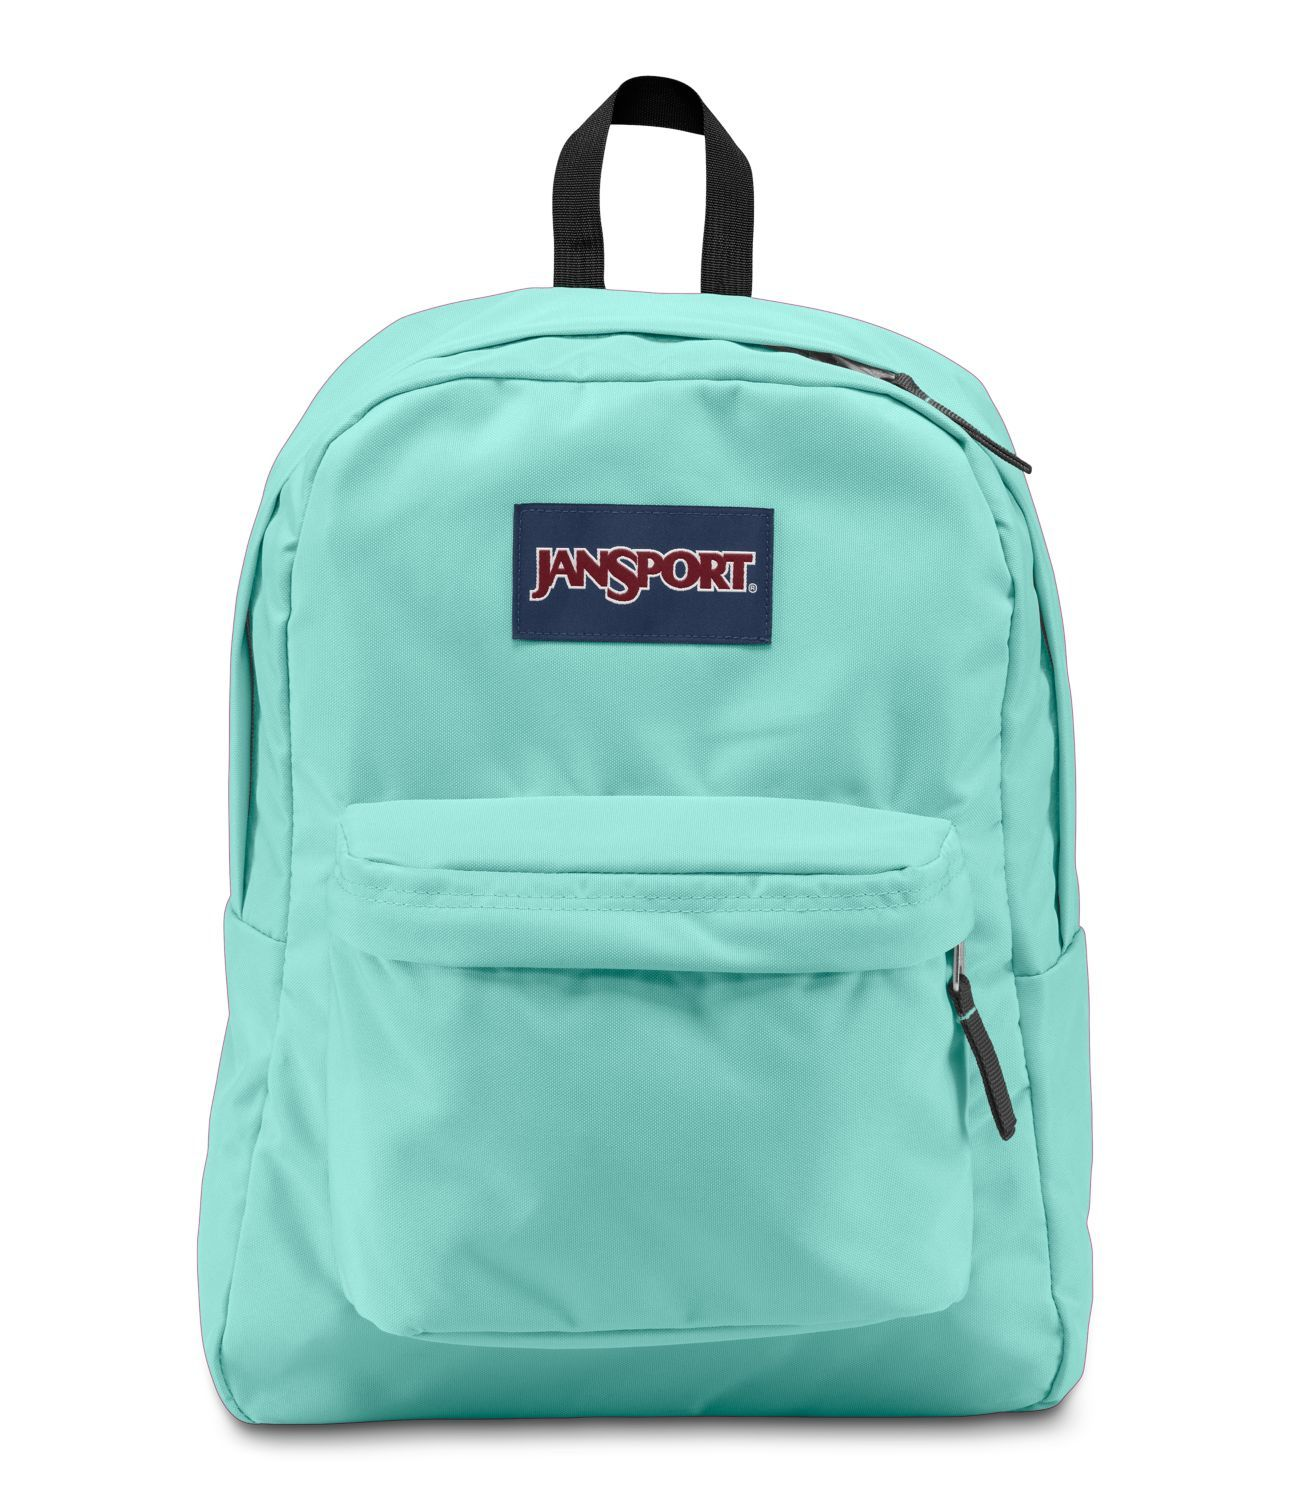 Image result for school backpack